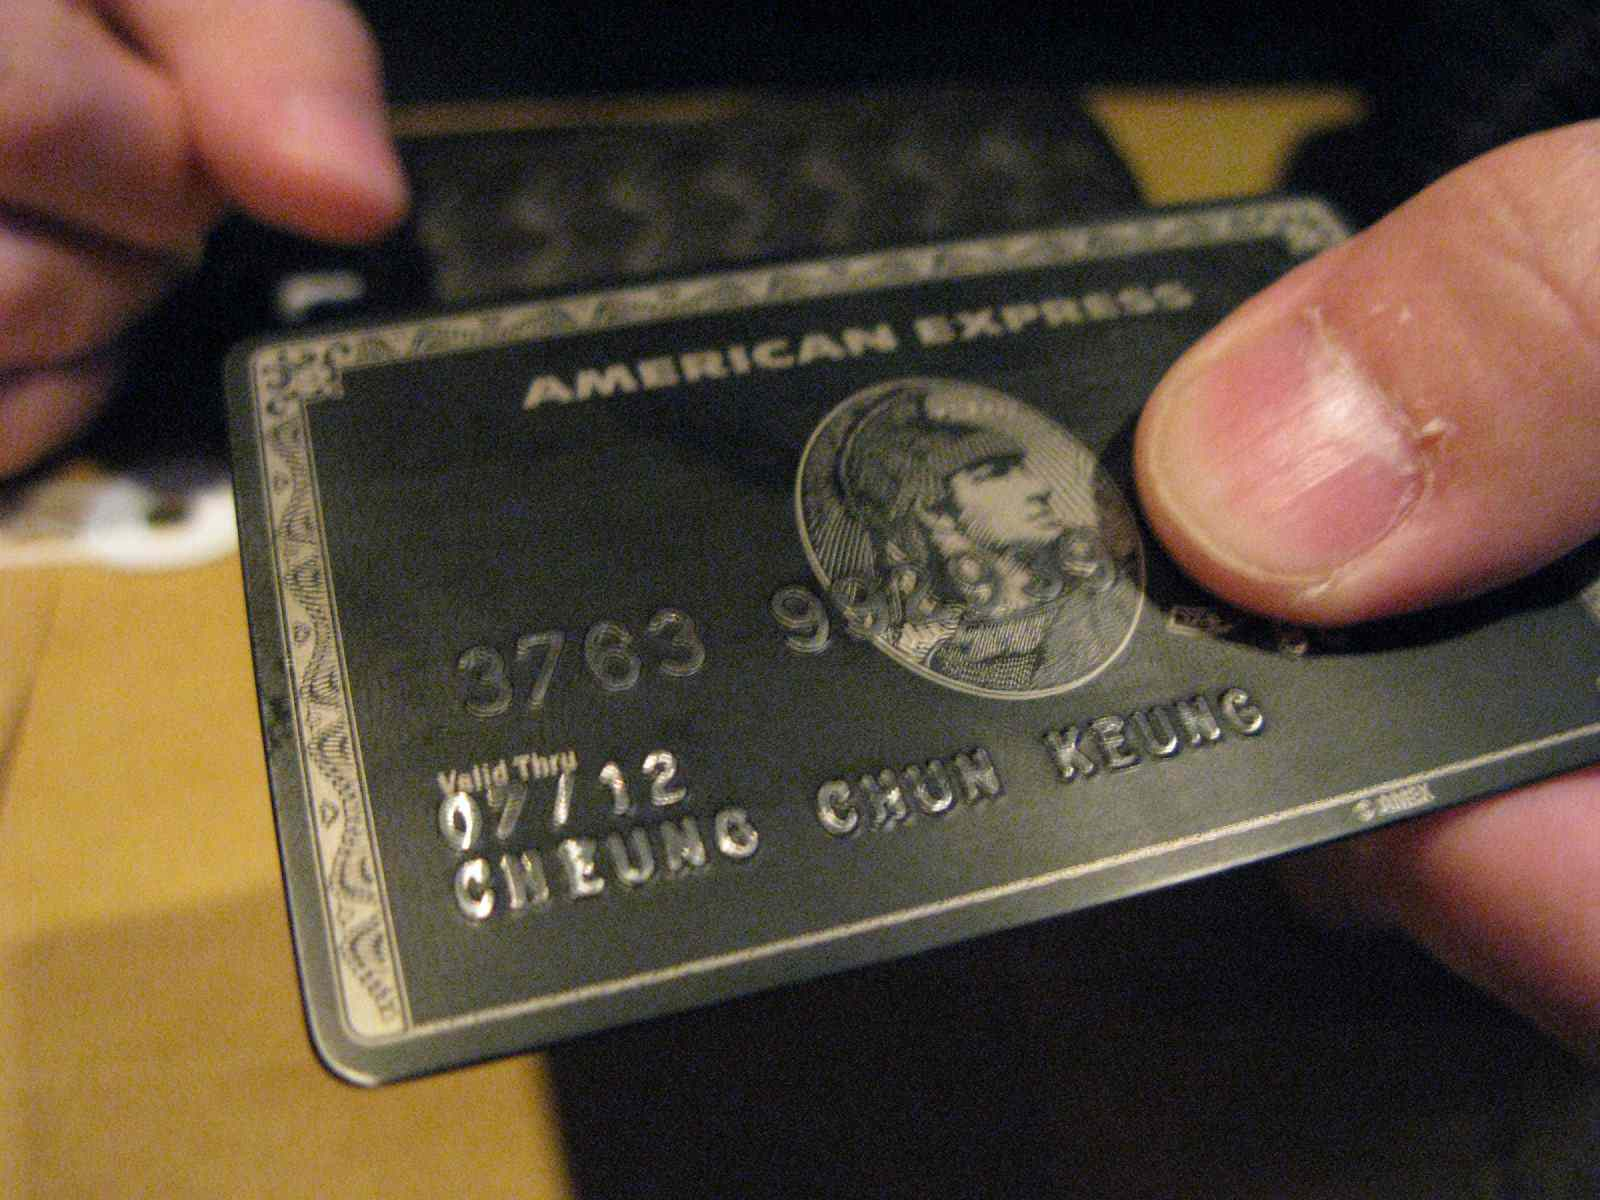 Gold vs. Platinum Amex Card: What's the Difference?